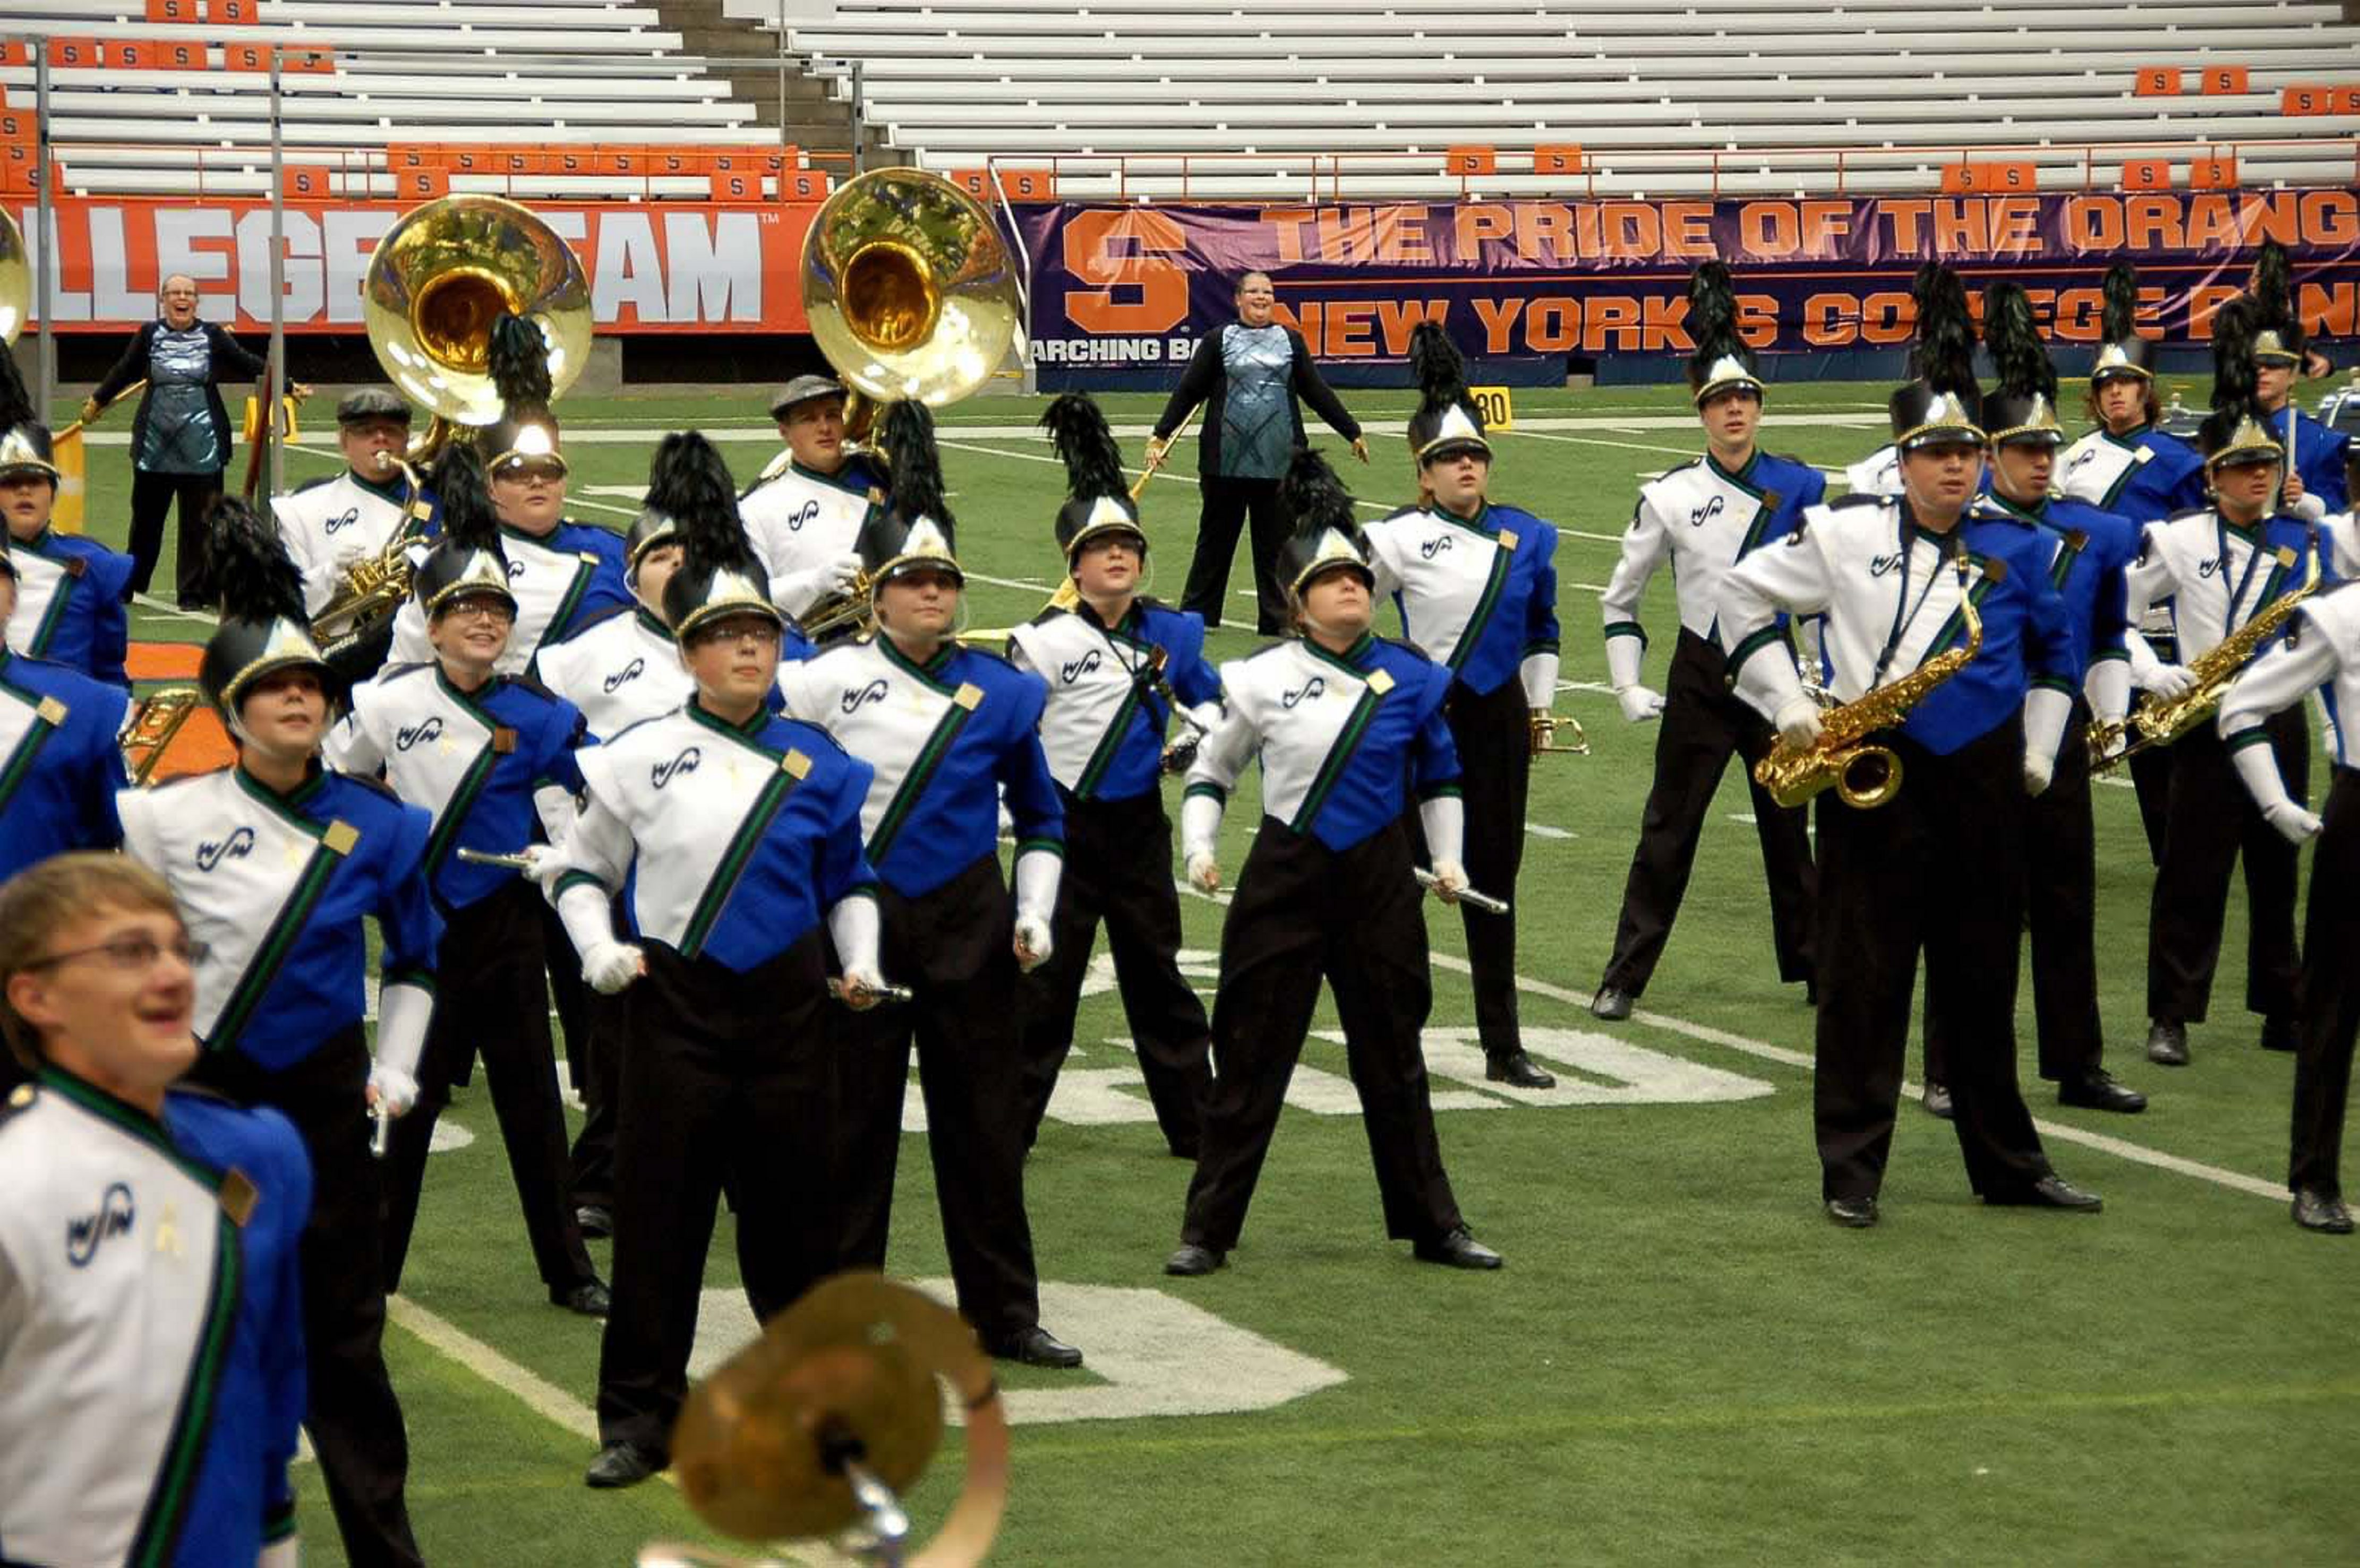 West Seneca marching band, with 60 students from West and East high schools, will perform at halftime of Gator Bowl on New Year's Day.